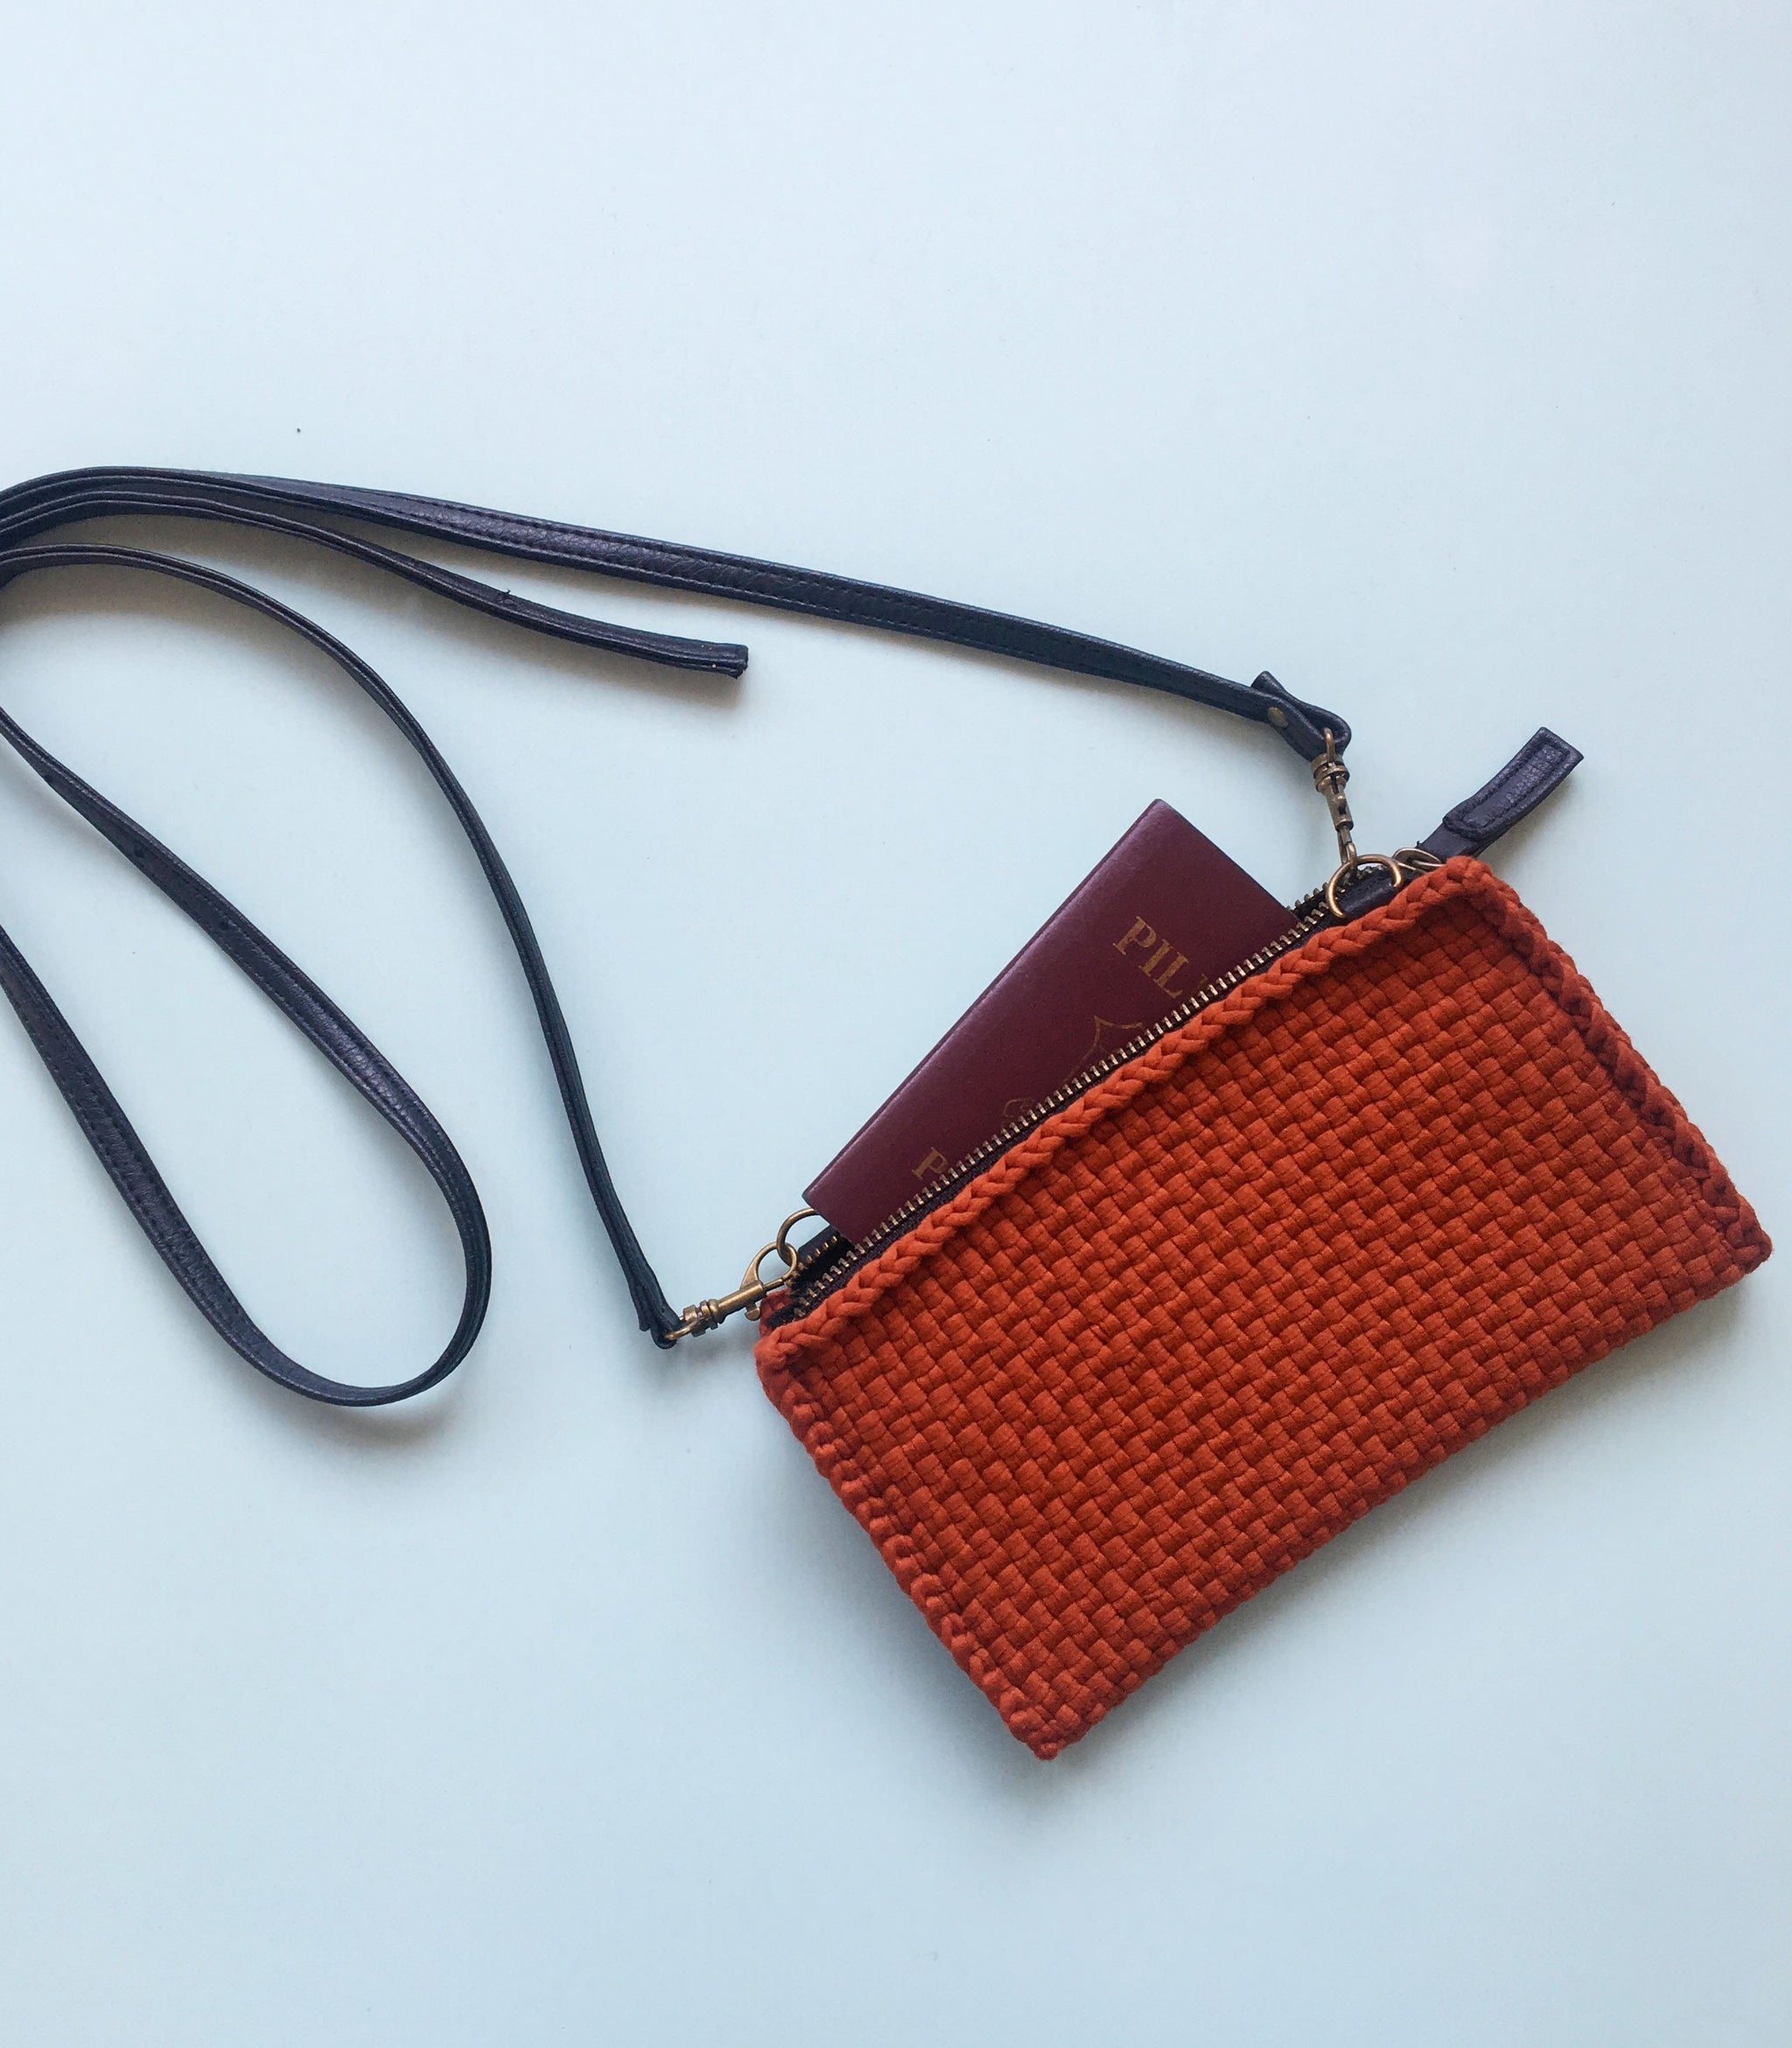 Clarence Travel Sling Bag in Burnt Orange - Rags2Riches